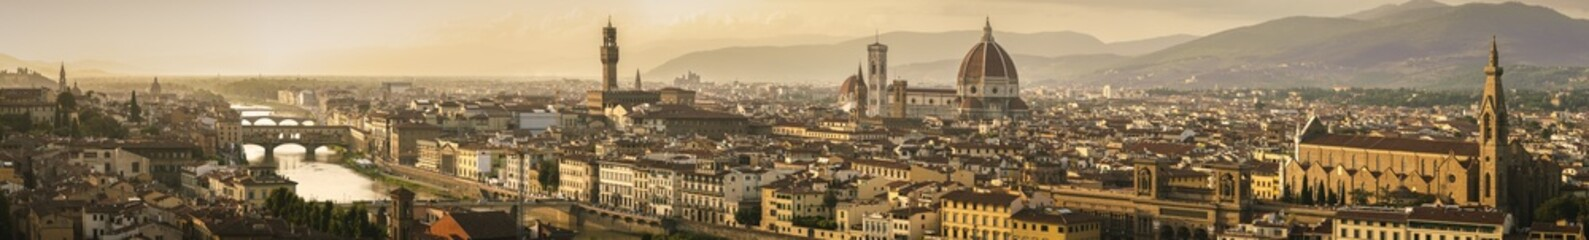 Magnificent panoramic view of Florence, Italy